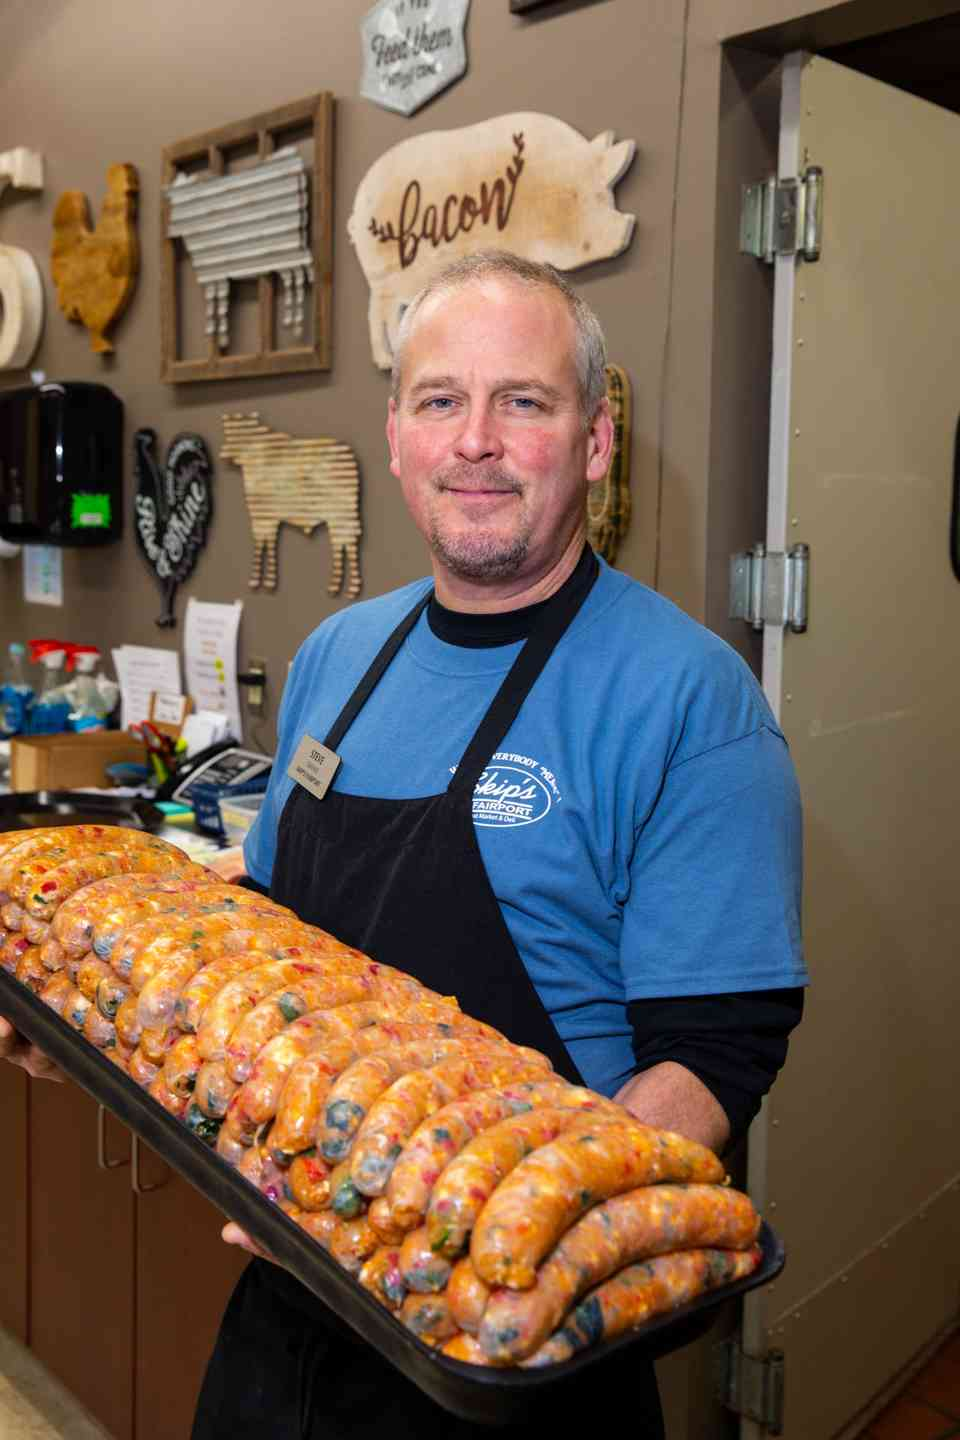 steve with sausages